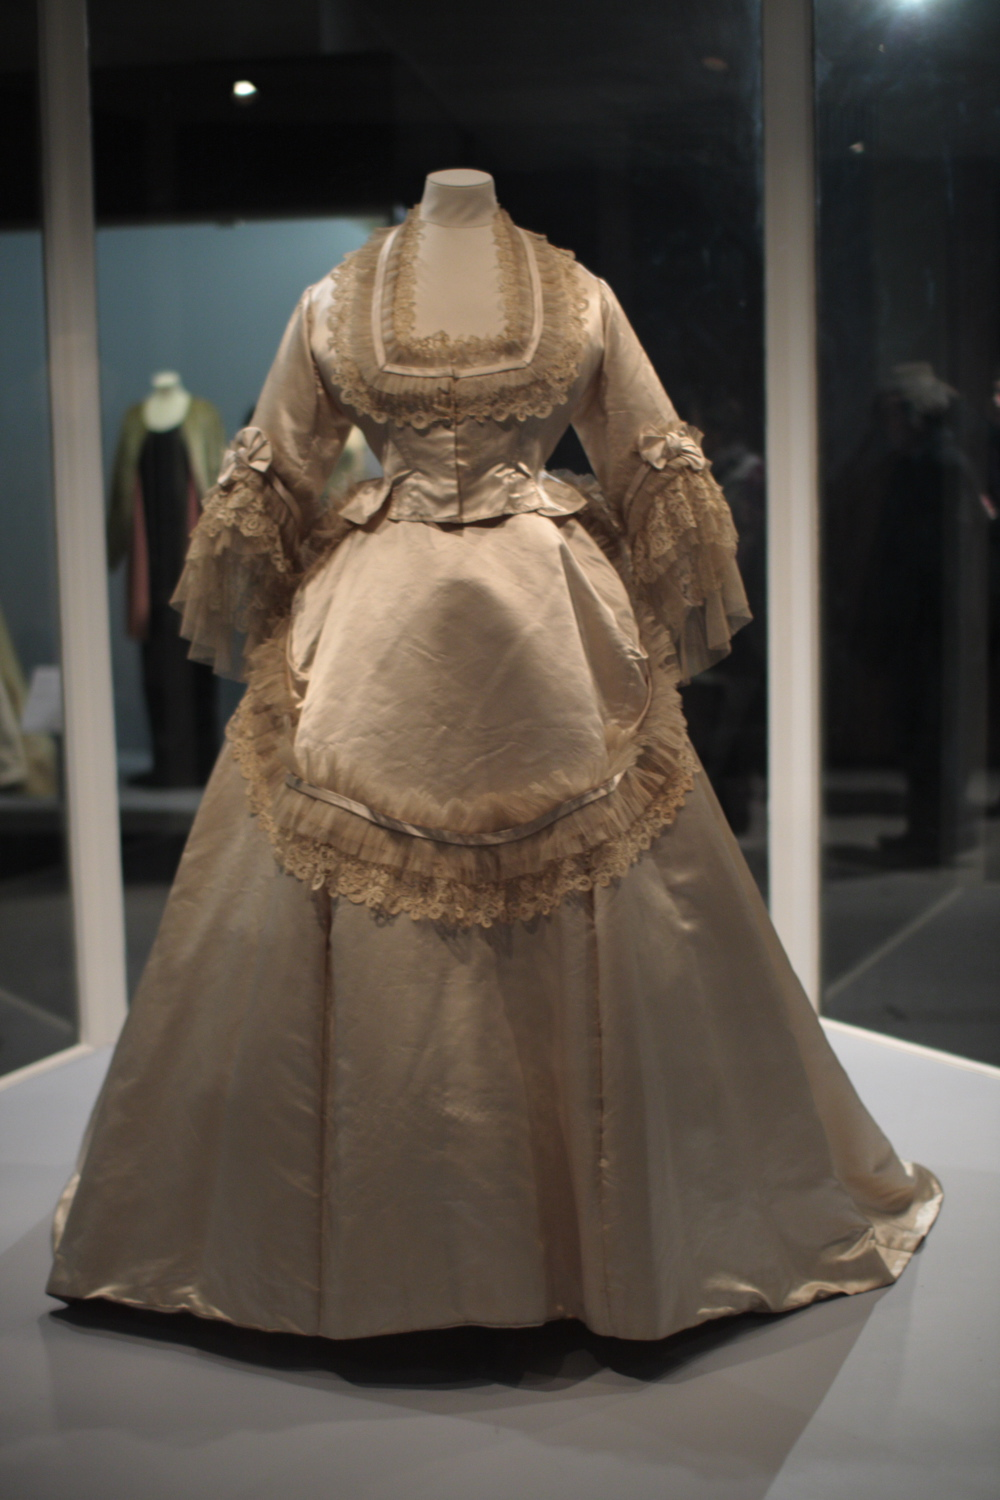 File:WLA Vanda Wedding Dress Ca 1870